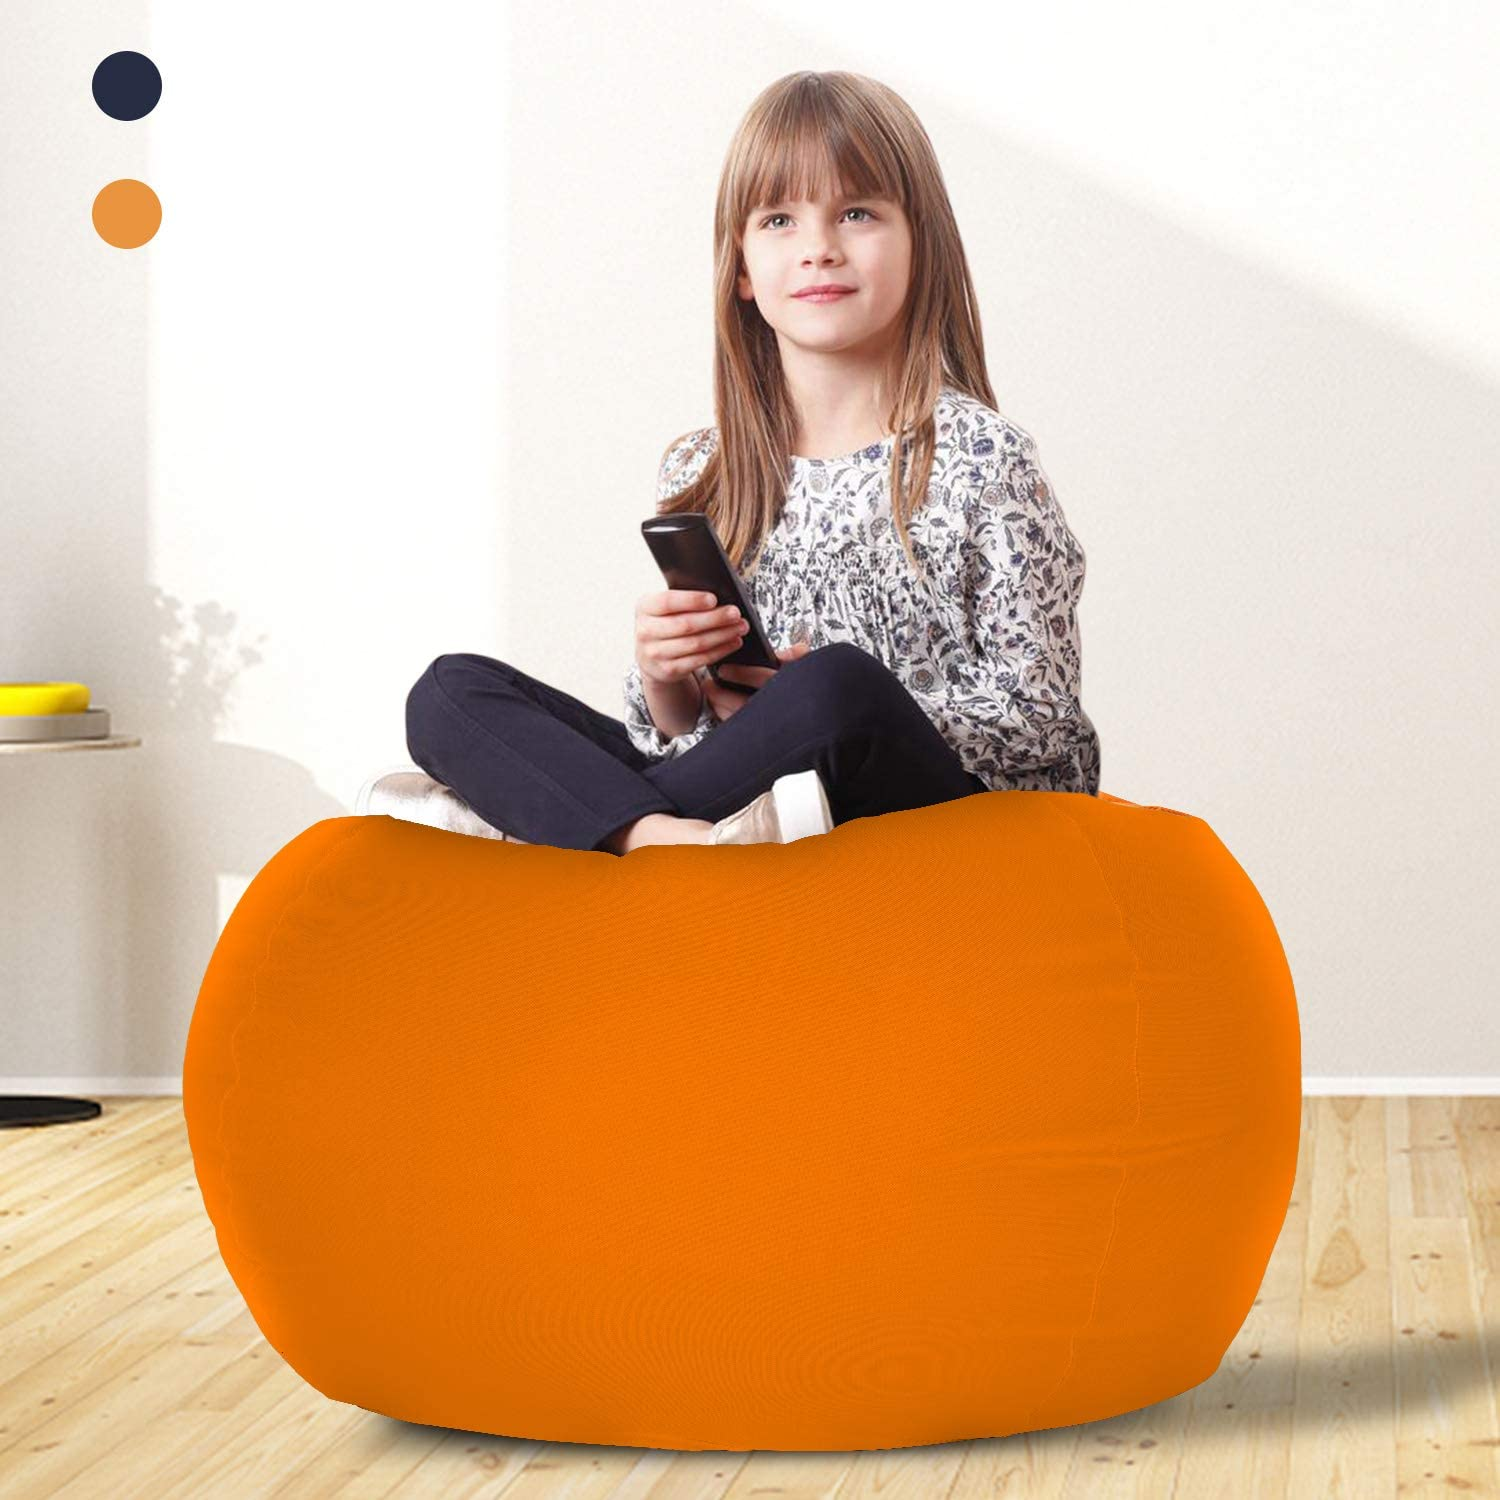 """Goodking Stuffed Animal Storage Bean Bag Chair Cover for Kids and Adults- Zipper Beanbag for Organizing Children Plush Toys- 35"""" Large Premium Canvas - Orange"""